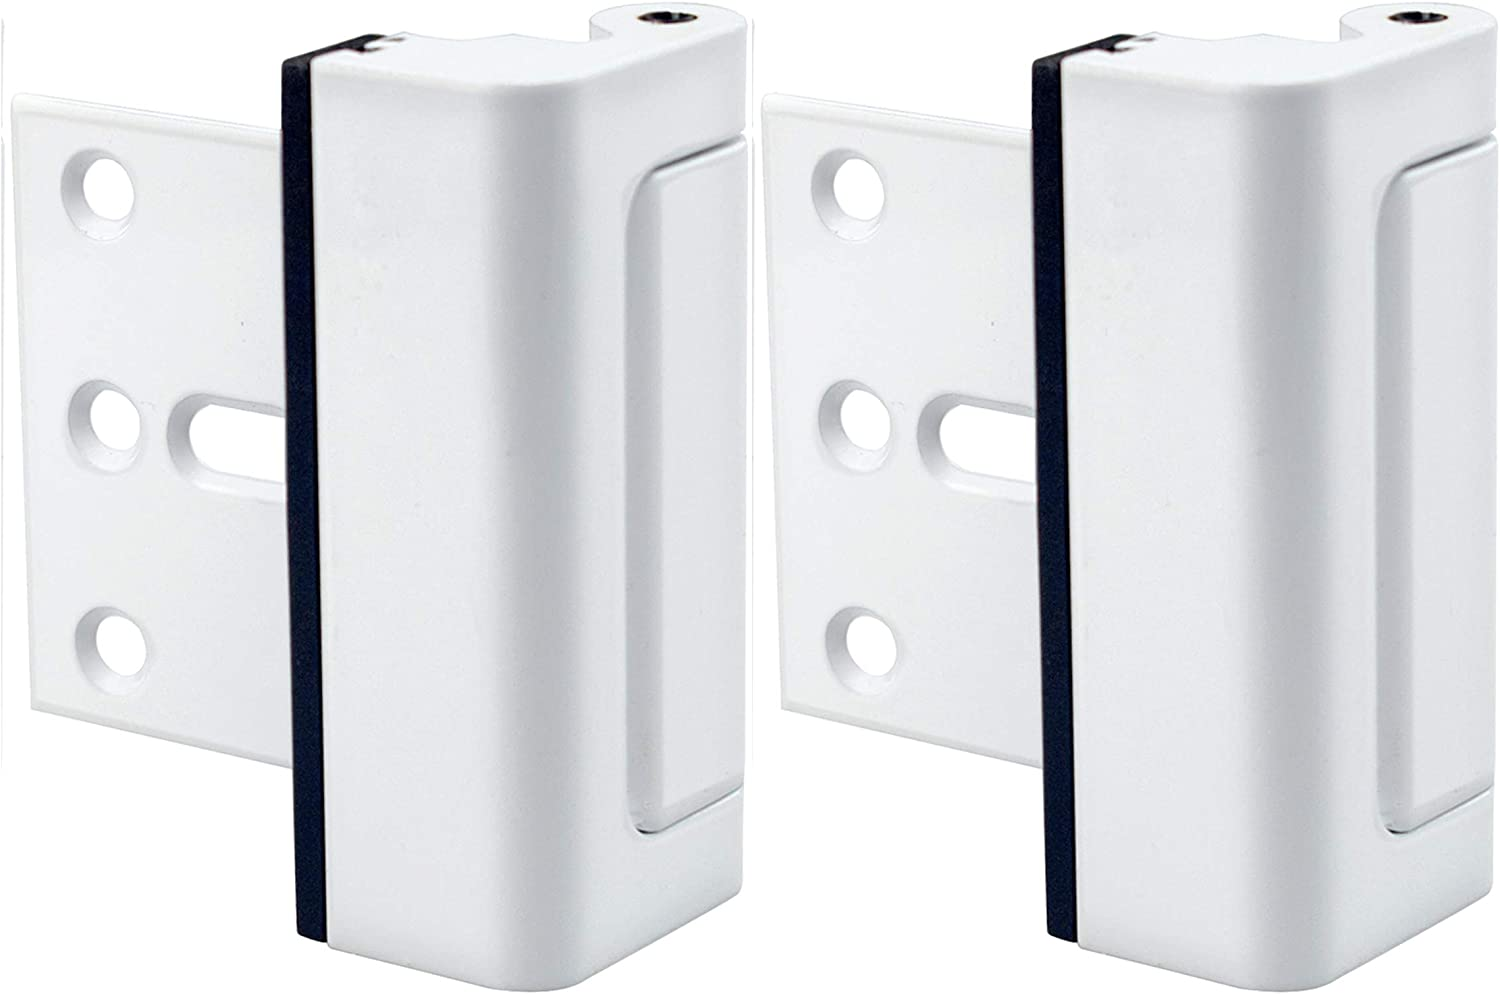 Door Lock for Home Security (2-Pack) - Easy to Install Door Latch Device, Aluminum Construction, for Door Security | Child Proof & Tamper Resistant, White Door Locks